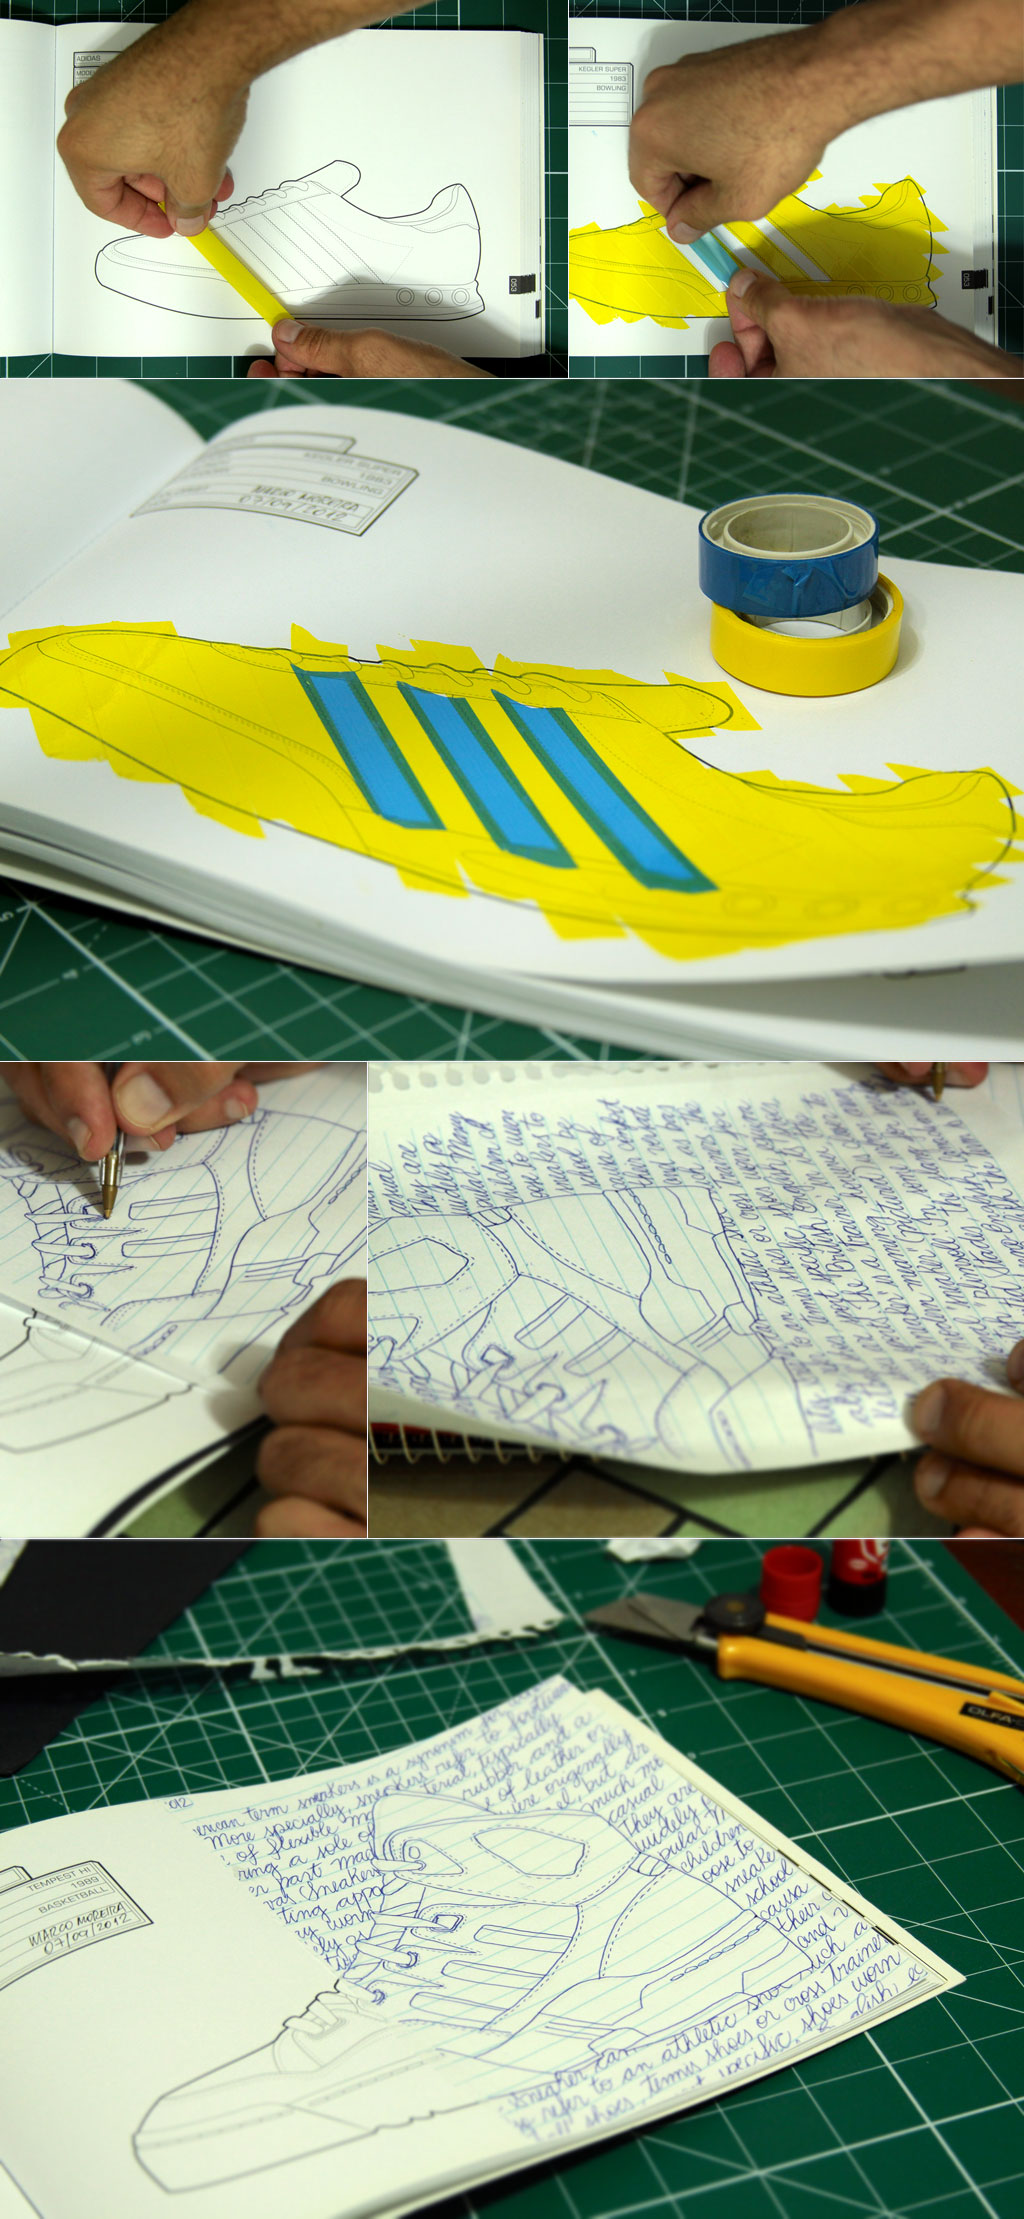 The Sneaker Coloring Book &gt; Making-of